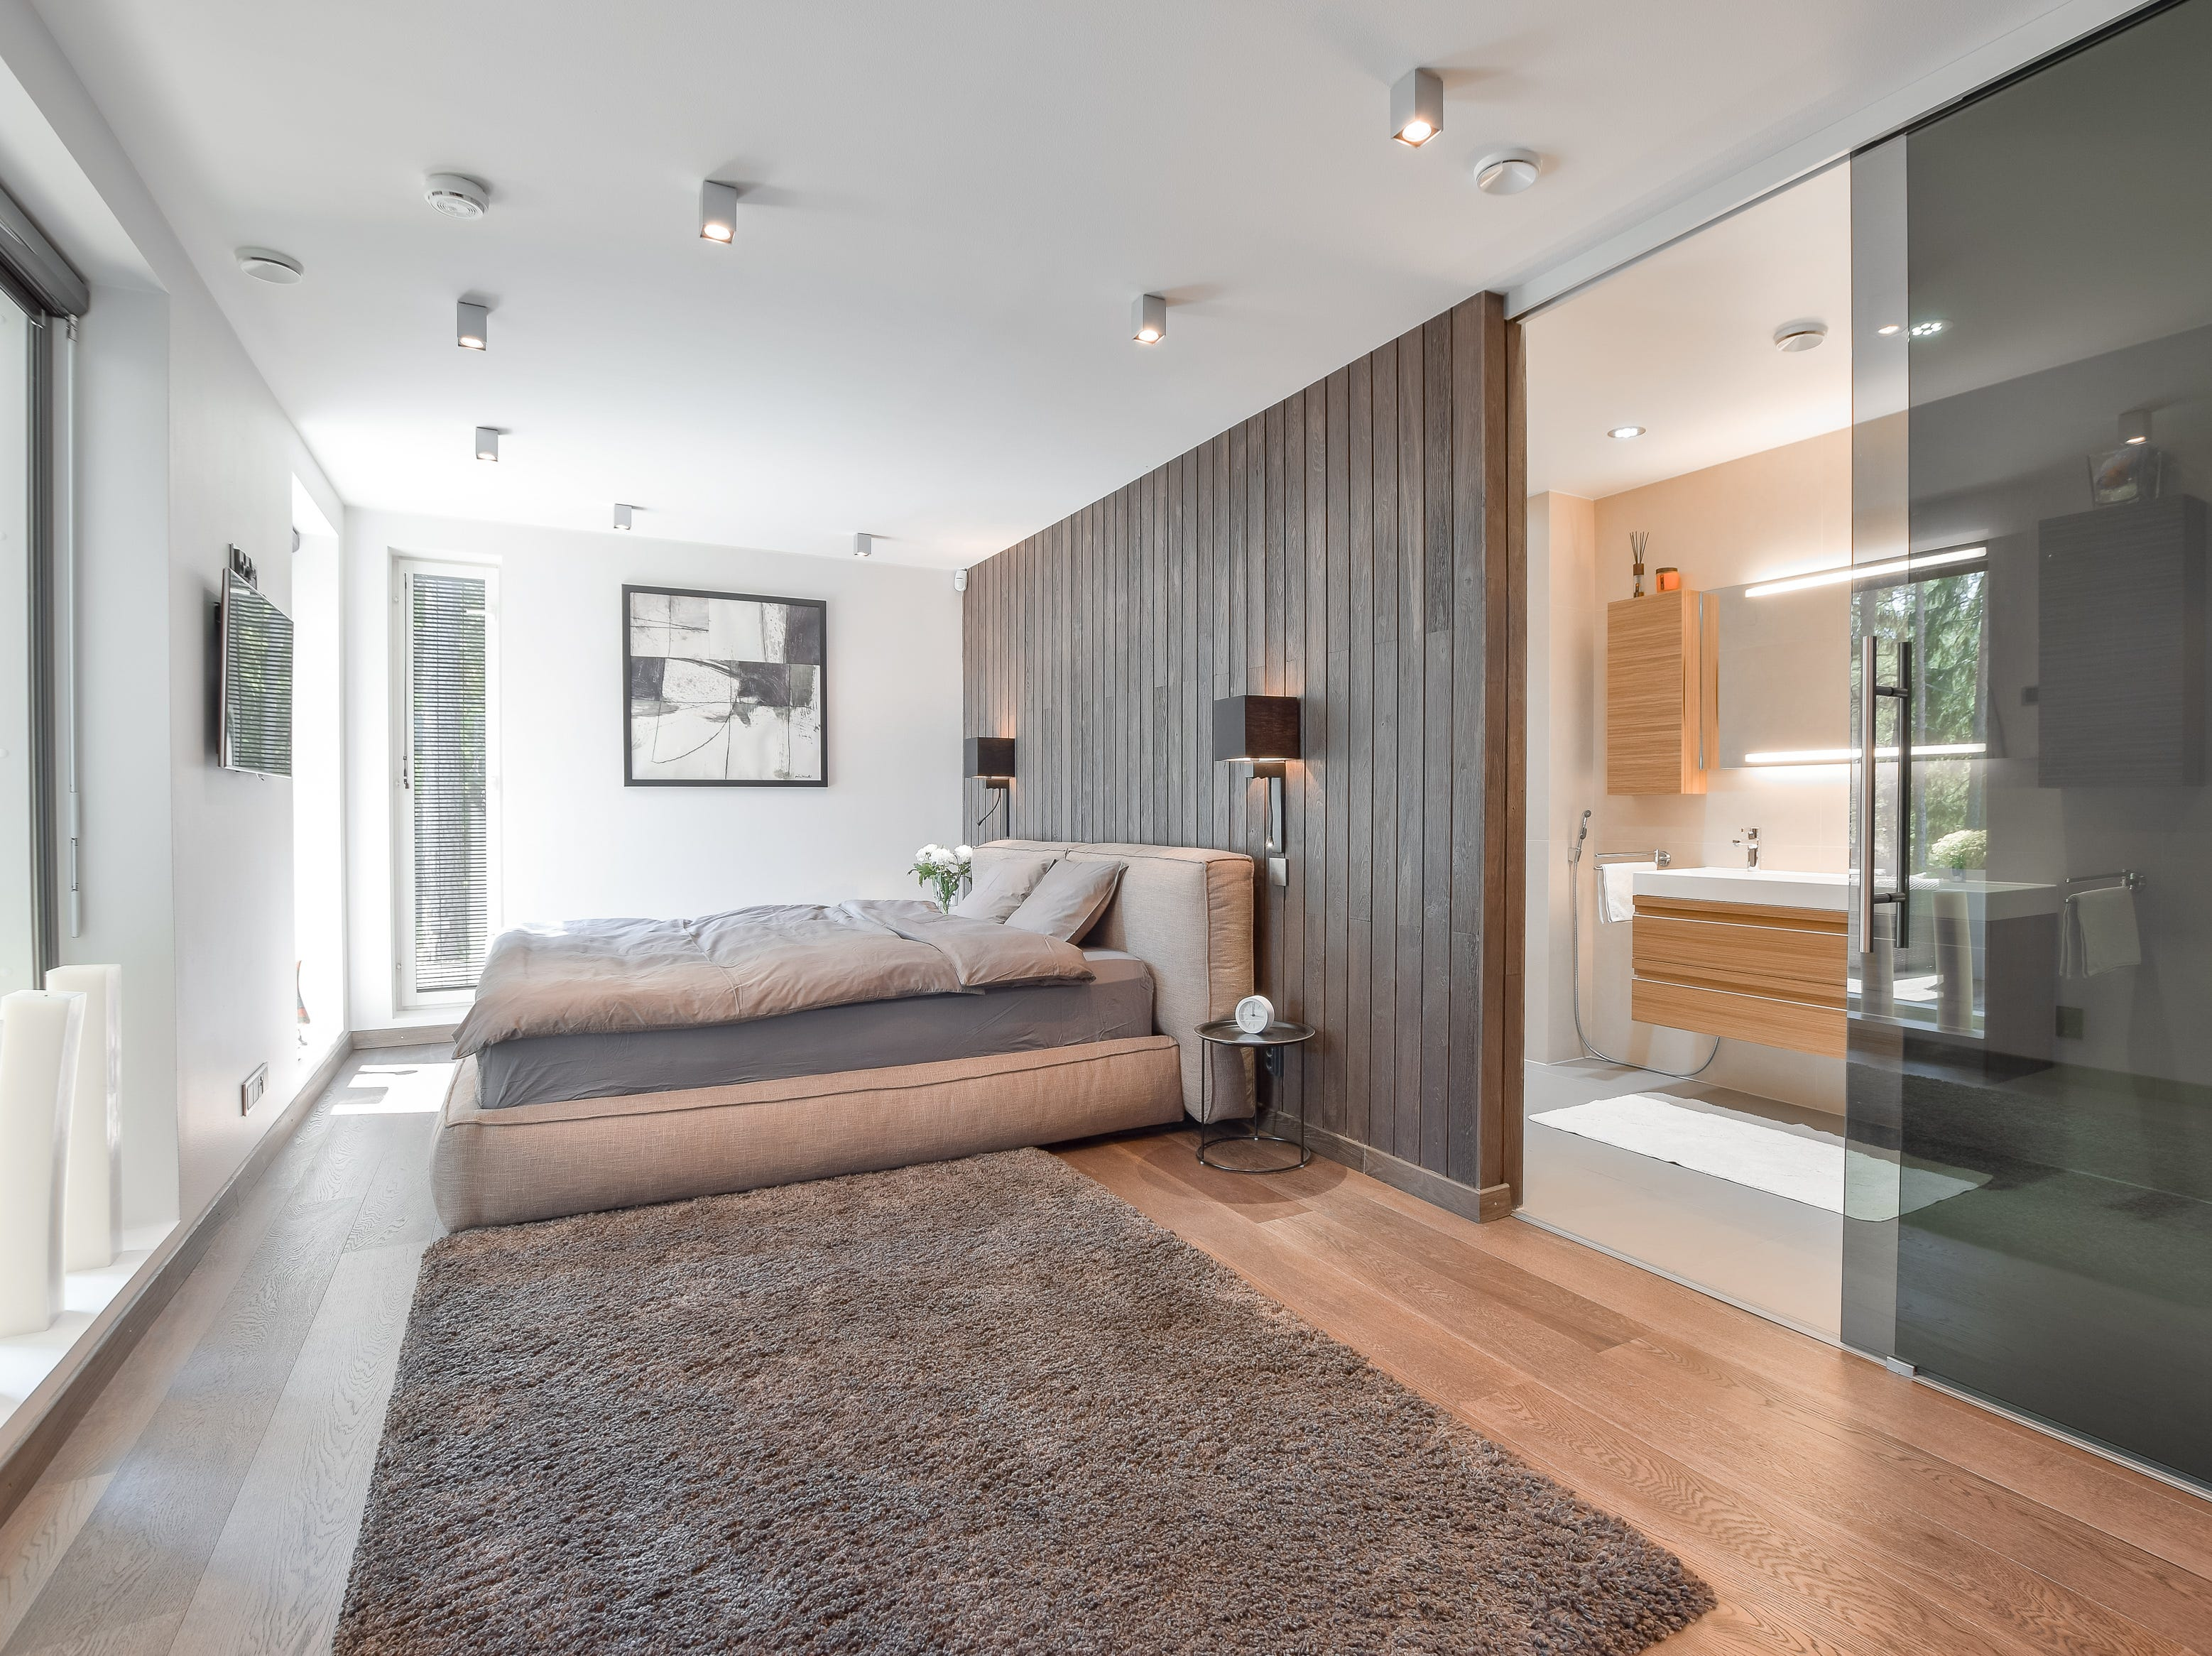 For $1.9 million, buyers can have this modern and functional villa with a master bedroom, bathroom and walk-in closet in Helsinki, Finland.